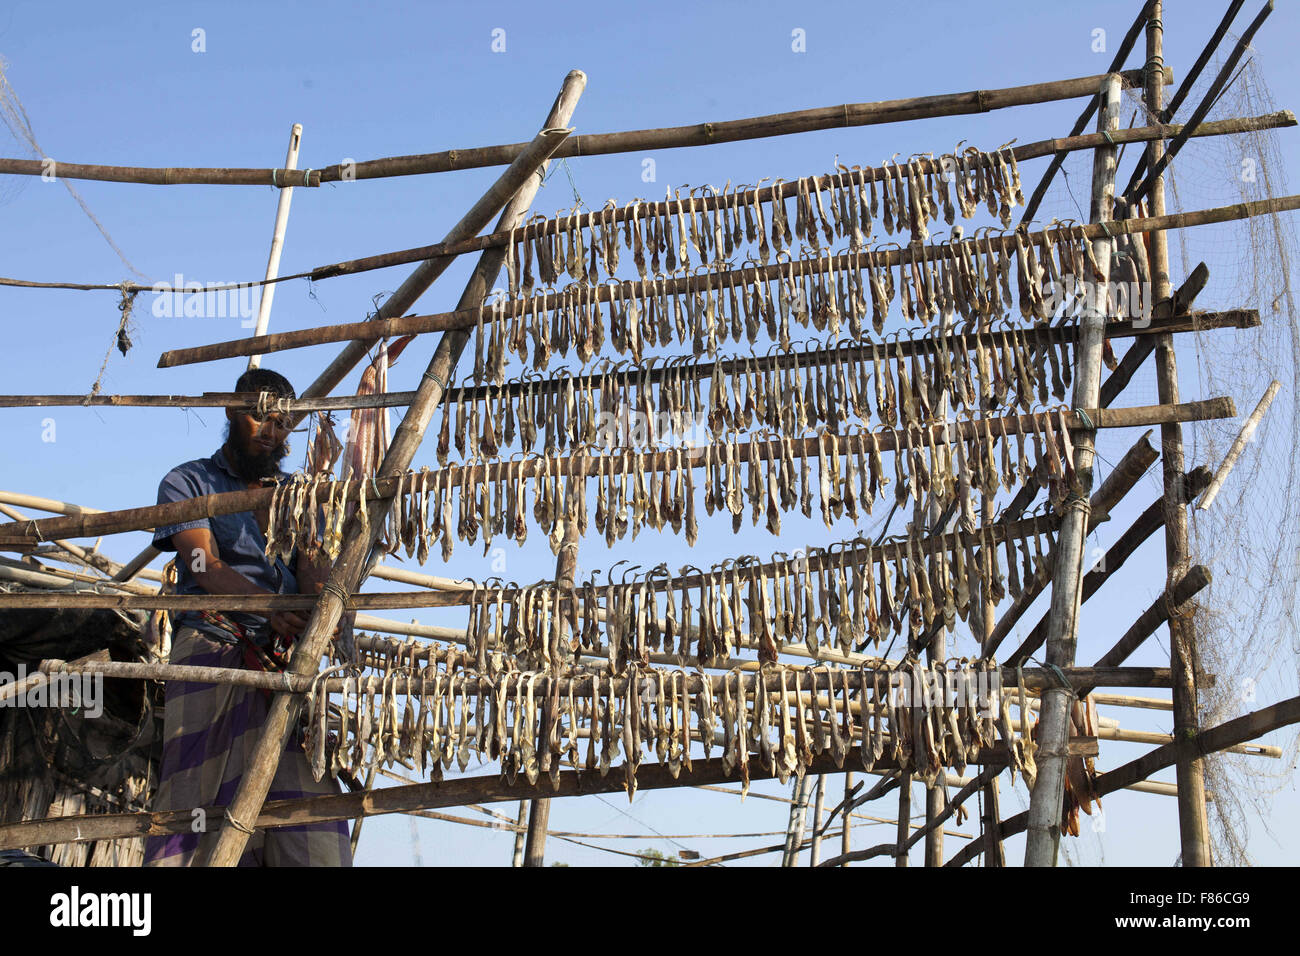 Nov. 29, 2015 - Cox'S Bazar, Bangladesh - COX's BAZAR, BANGLADESH - November 29: Fisher man dryingfish in - Stock Image